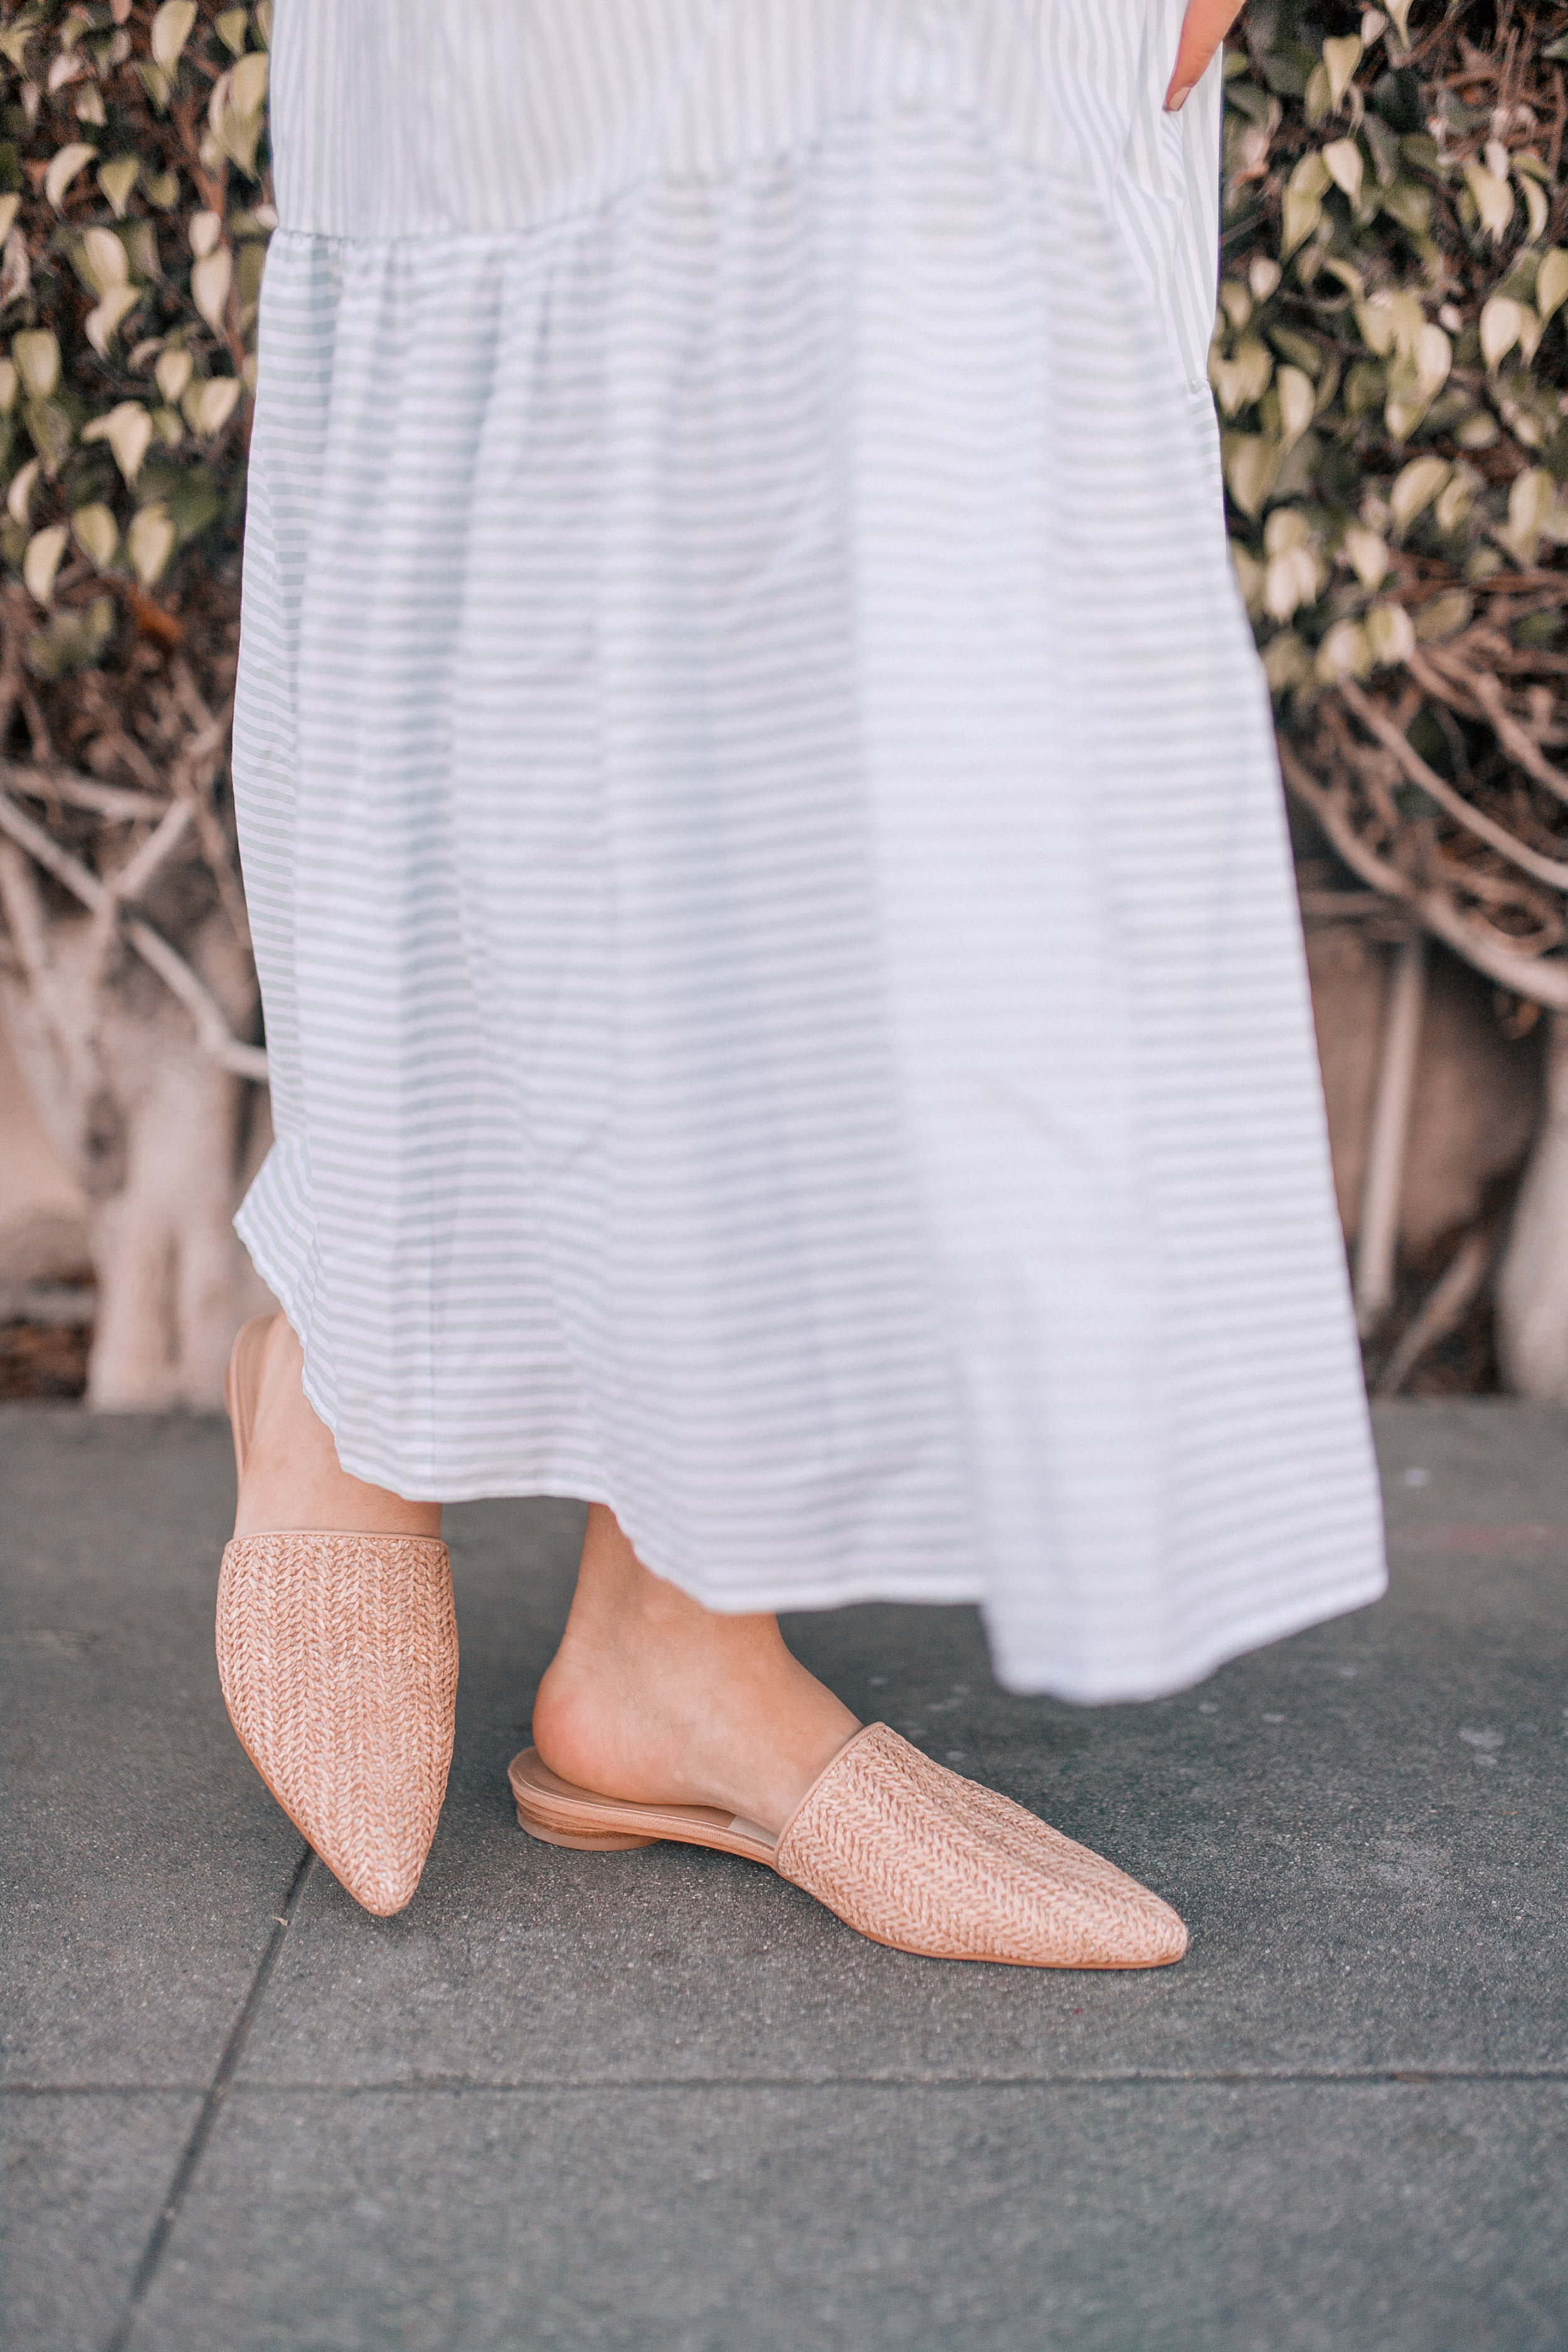 Caila Quinn The Bachelor DSW Shoes Wedding Guest Outfit Ideas